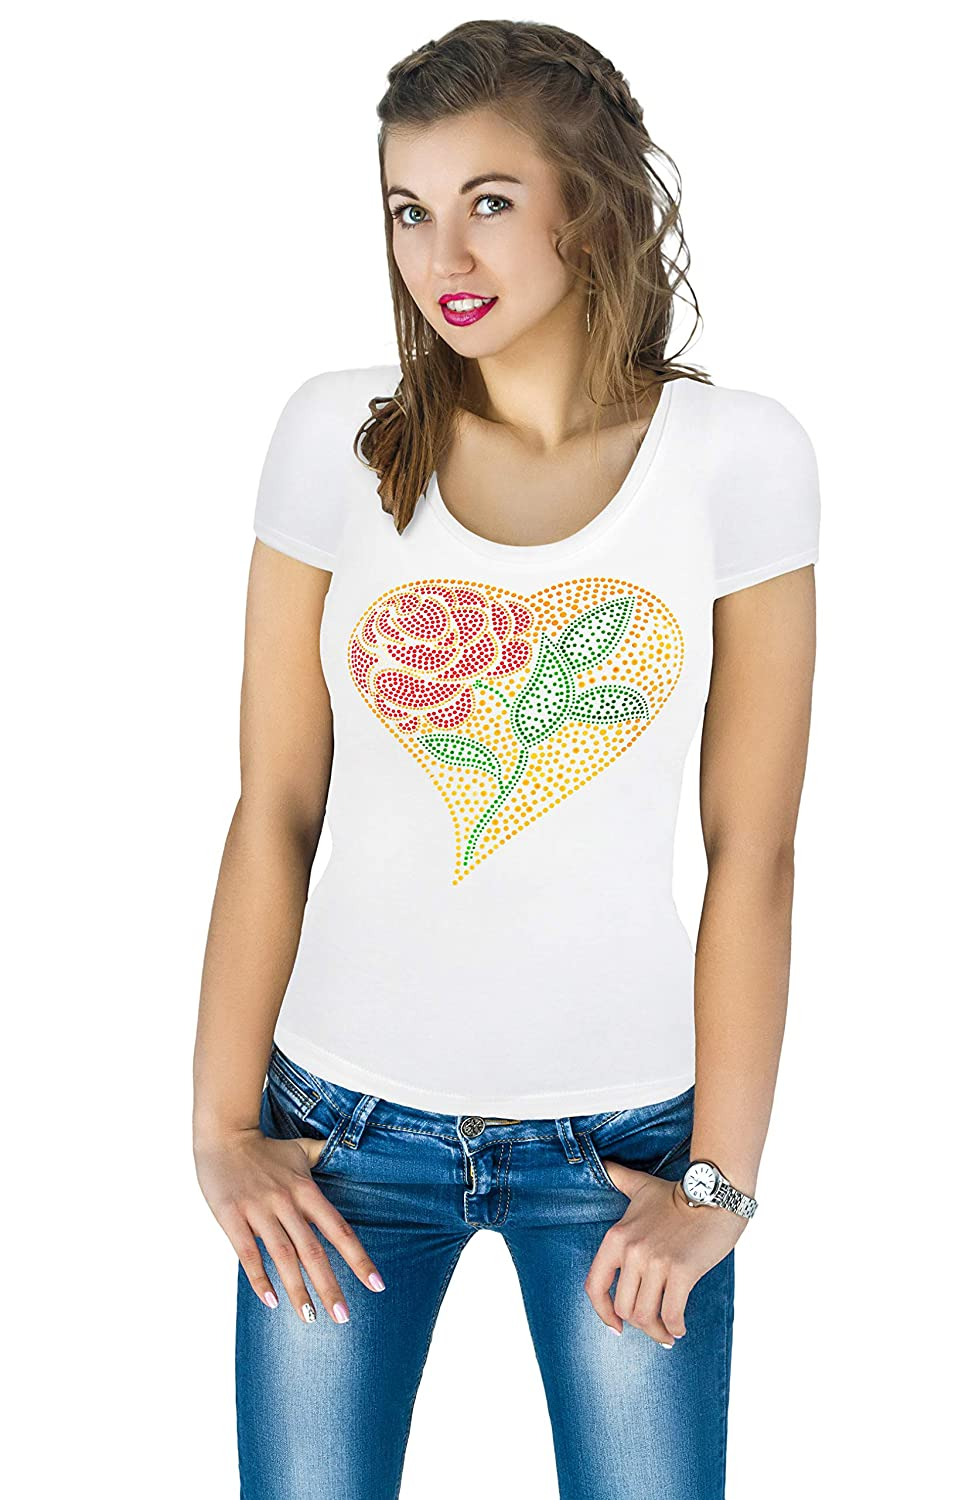 Wheart Fashion Women's tShirt with Sequins Cute Sparkly Applique